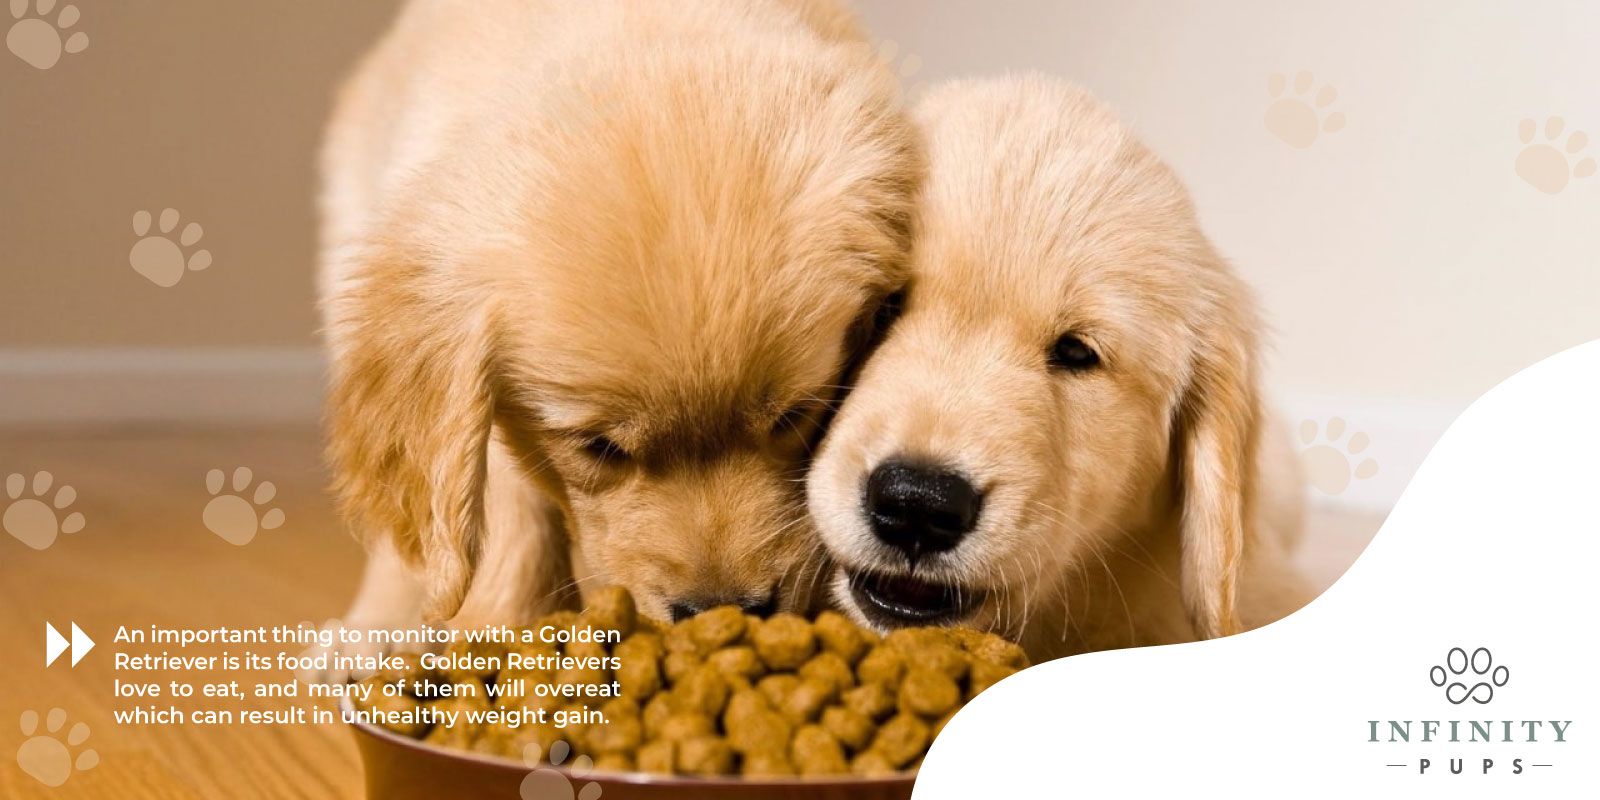 monitor golden retriever's food intake